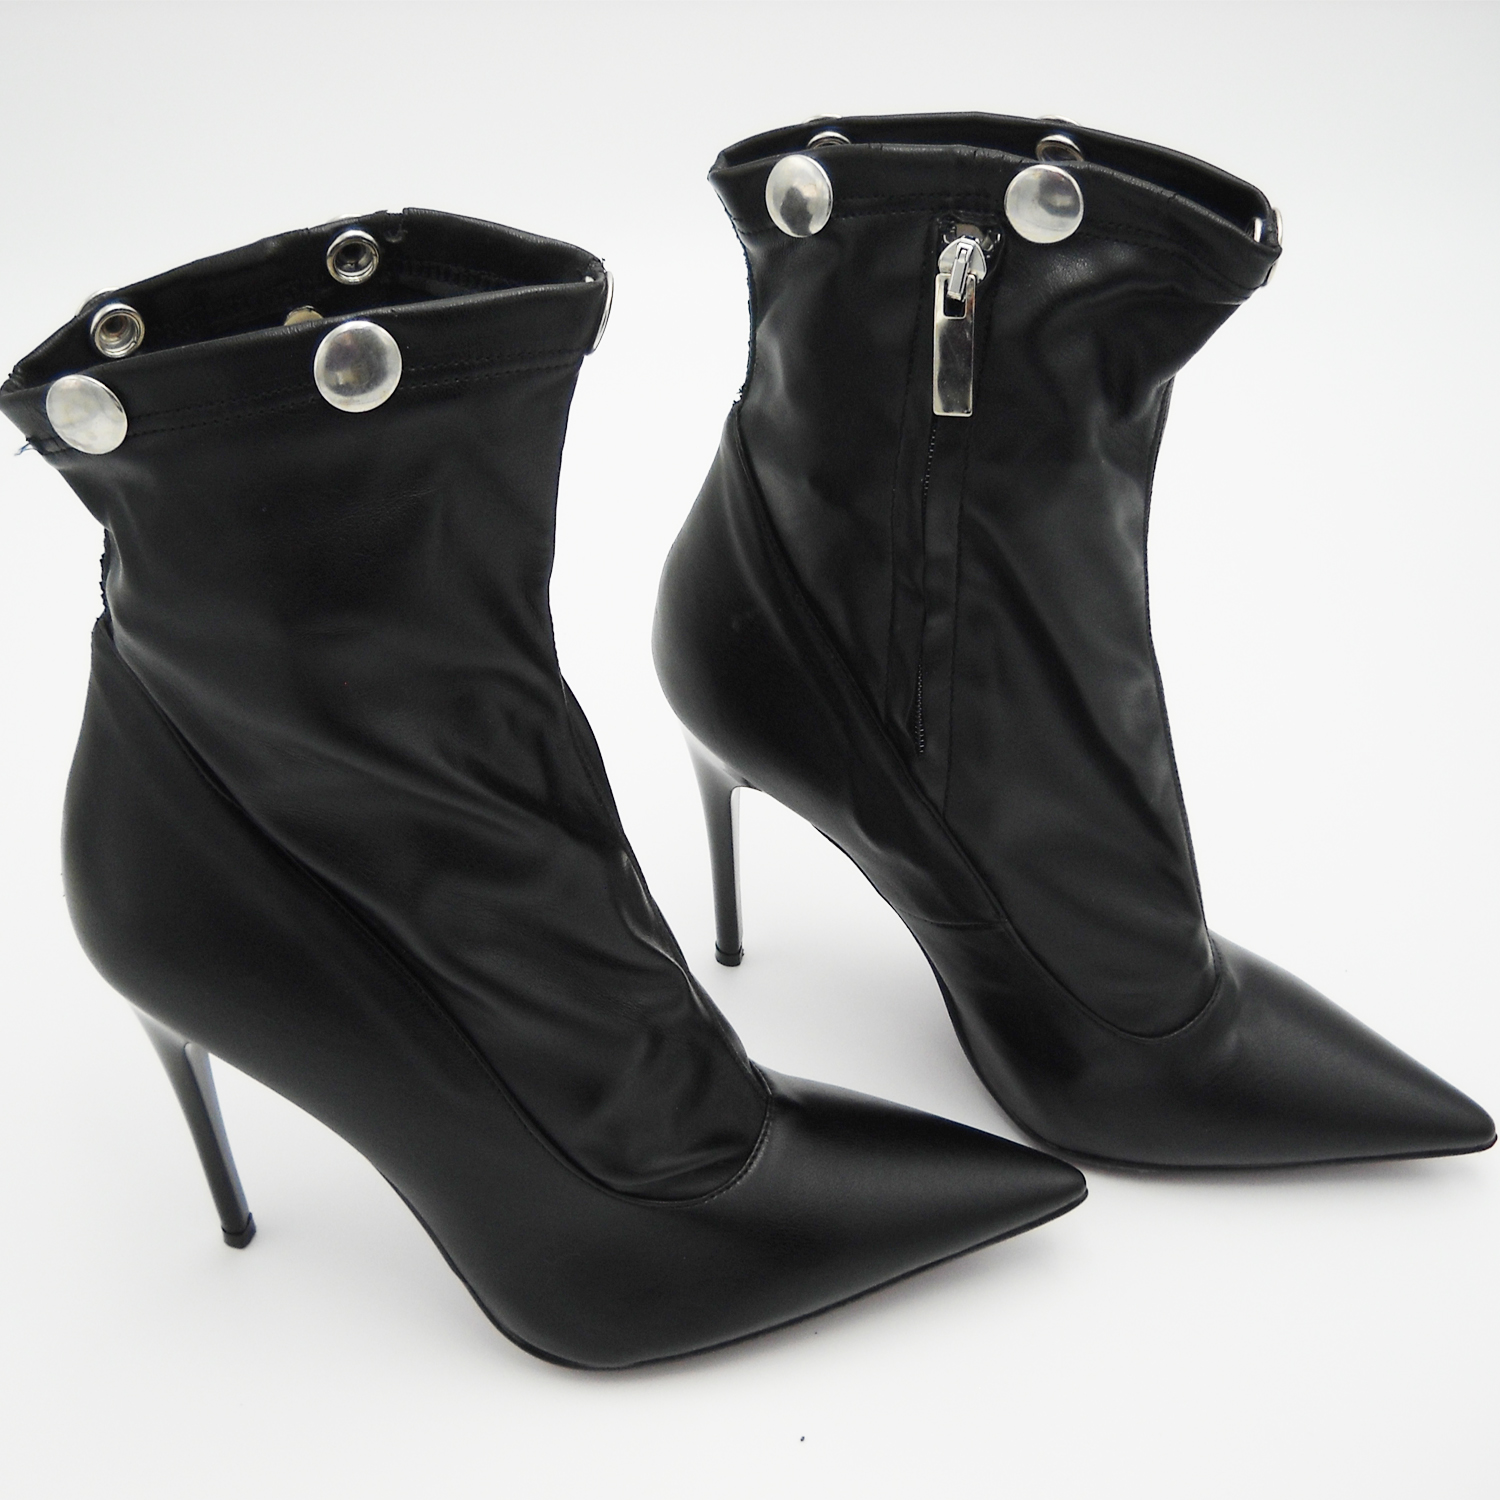 Ankle boots boots black leather spike heel sexy high fashion dark 37